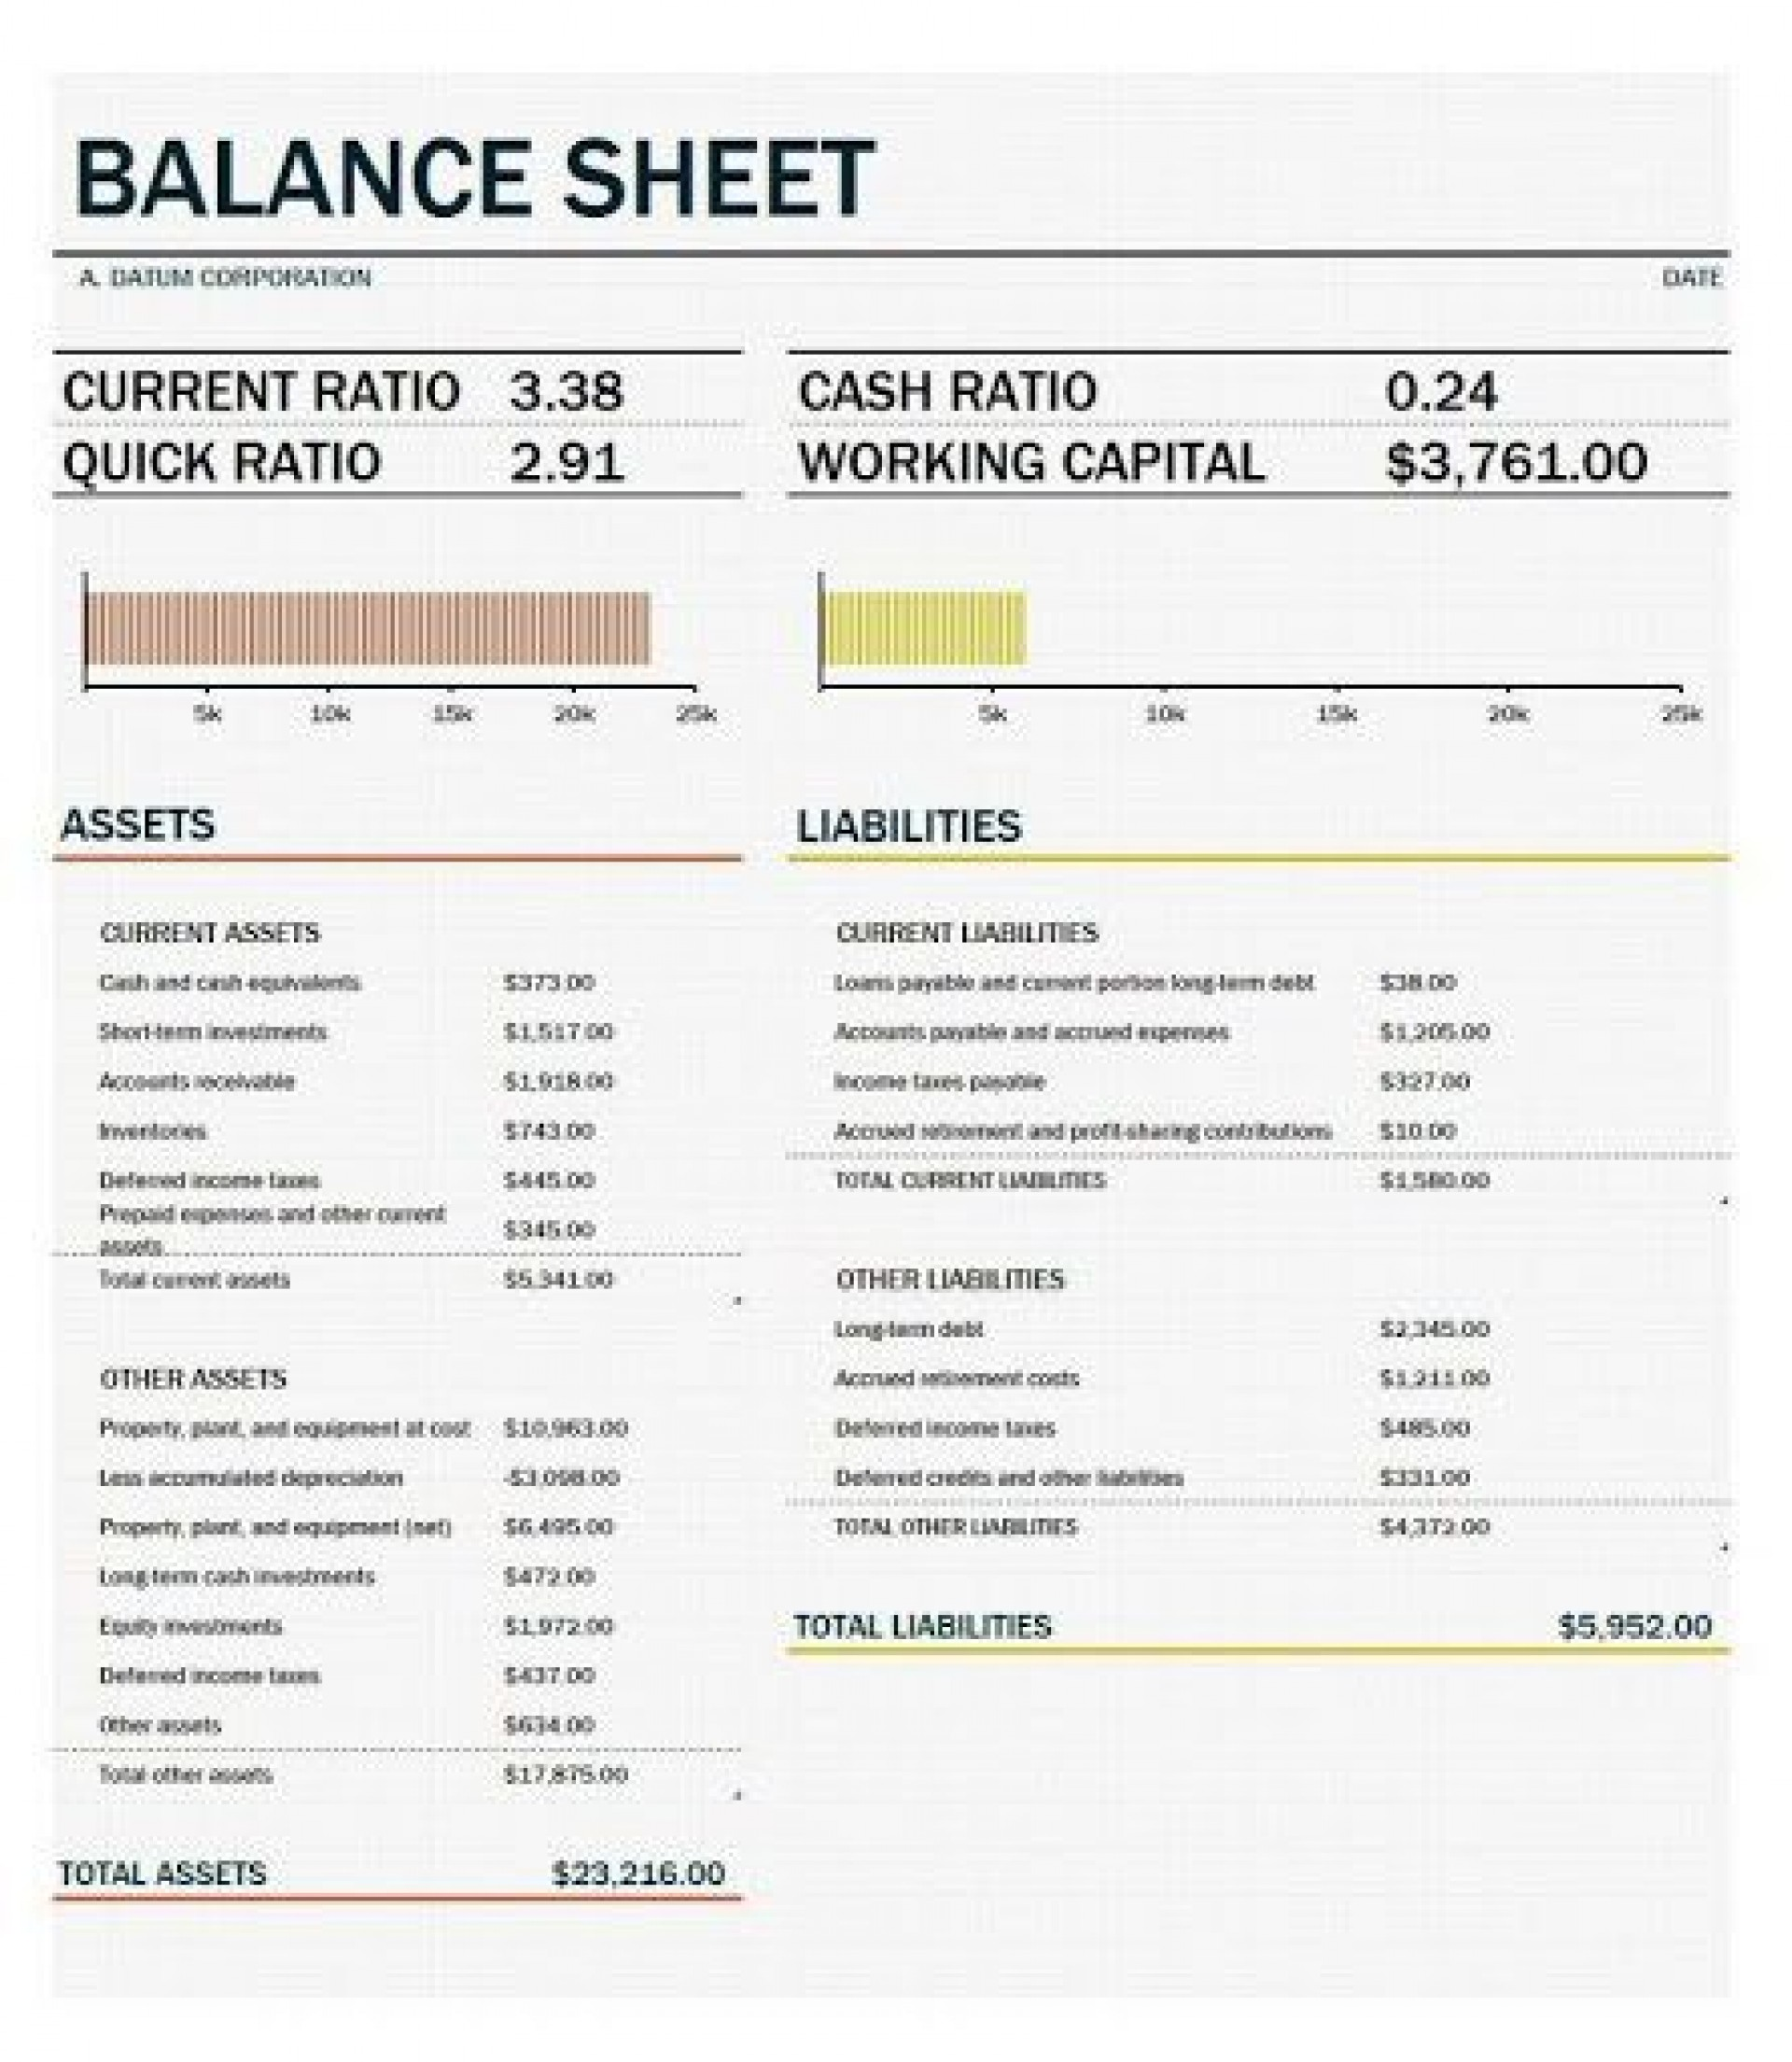 002 Unforgettable Simple Balance Sheet Template Photo  Example For Small Busines Sample A Church1920